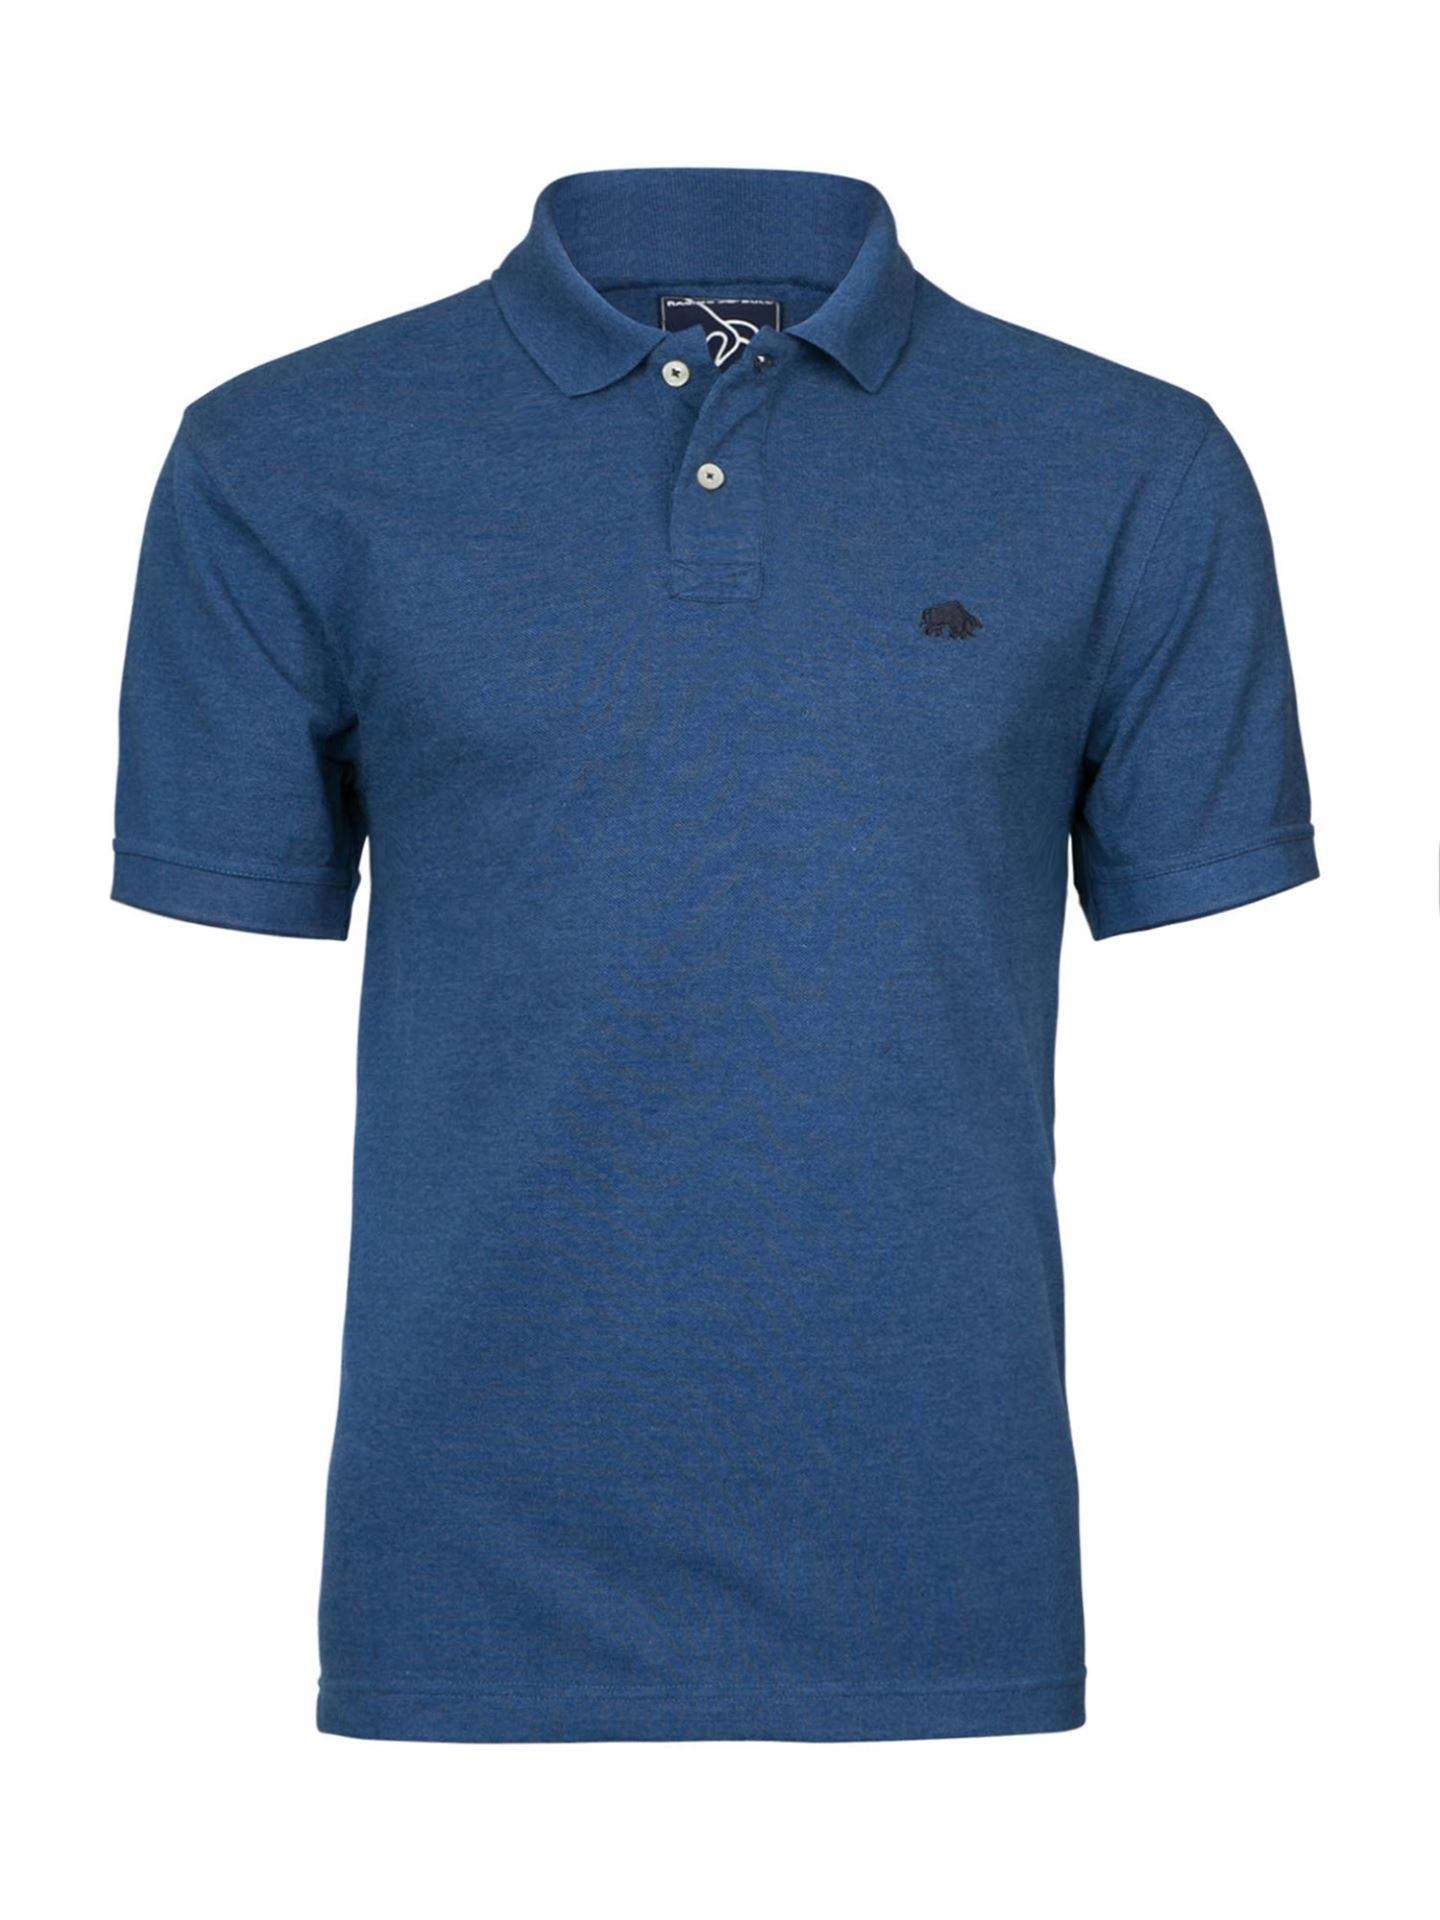 Men's Raging Bull Fly Fit Plain Polo, Denim